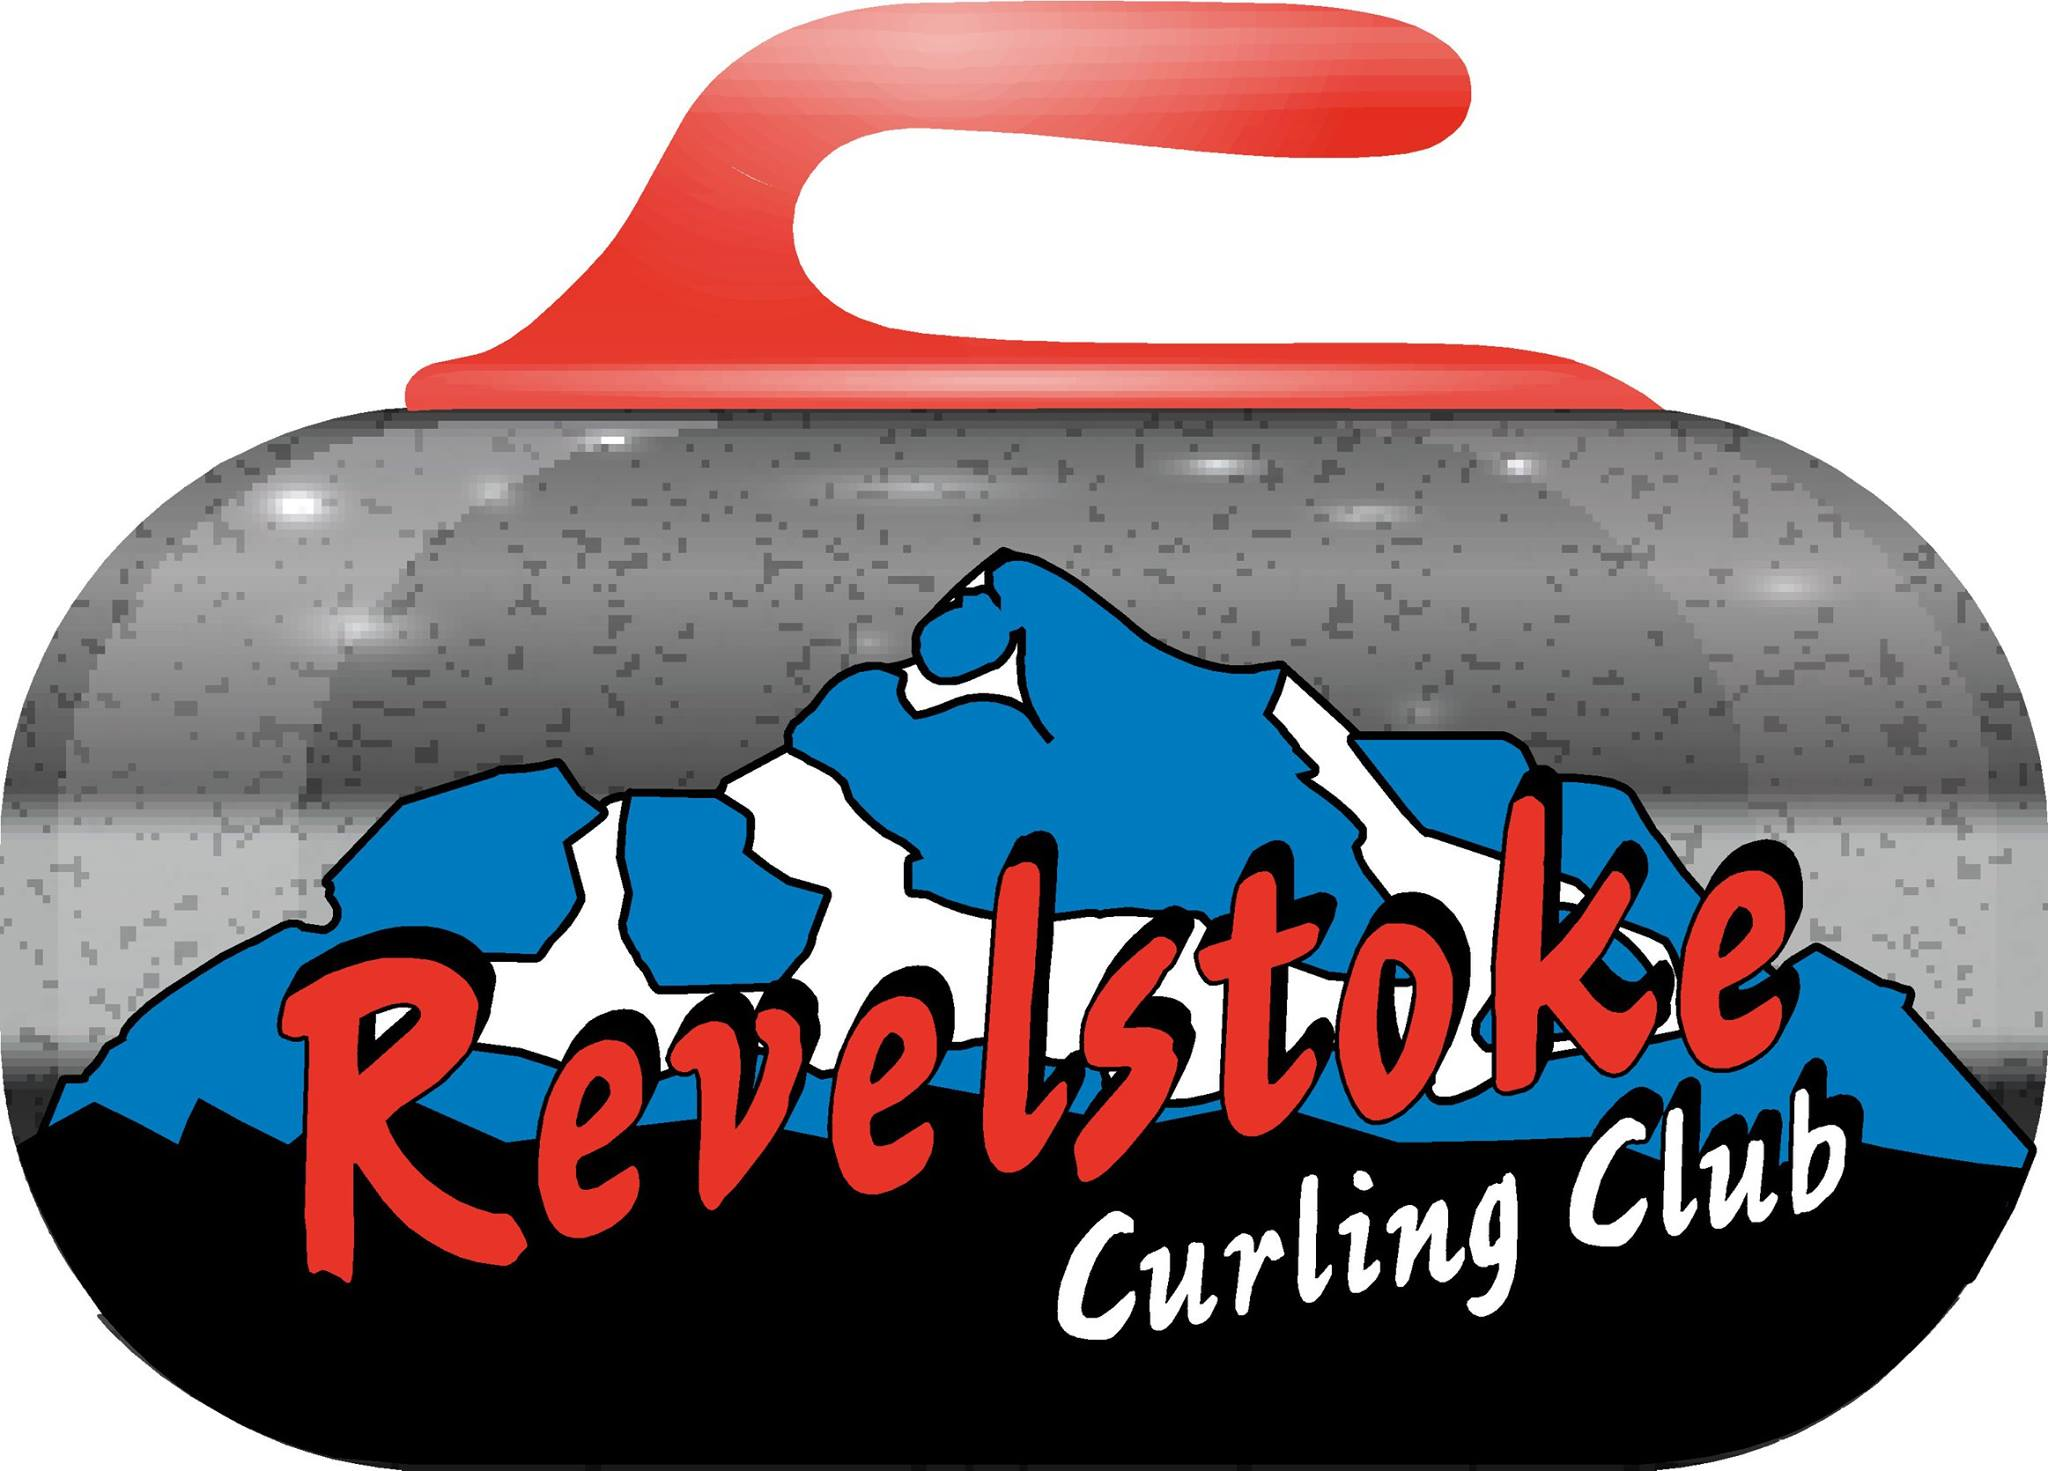 68th Annual Cashspiel (Curling Tournament) @ Revelstoke Forum